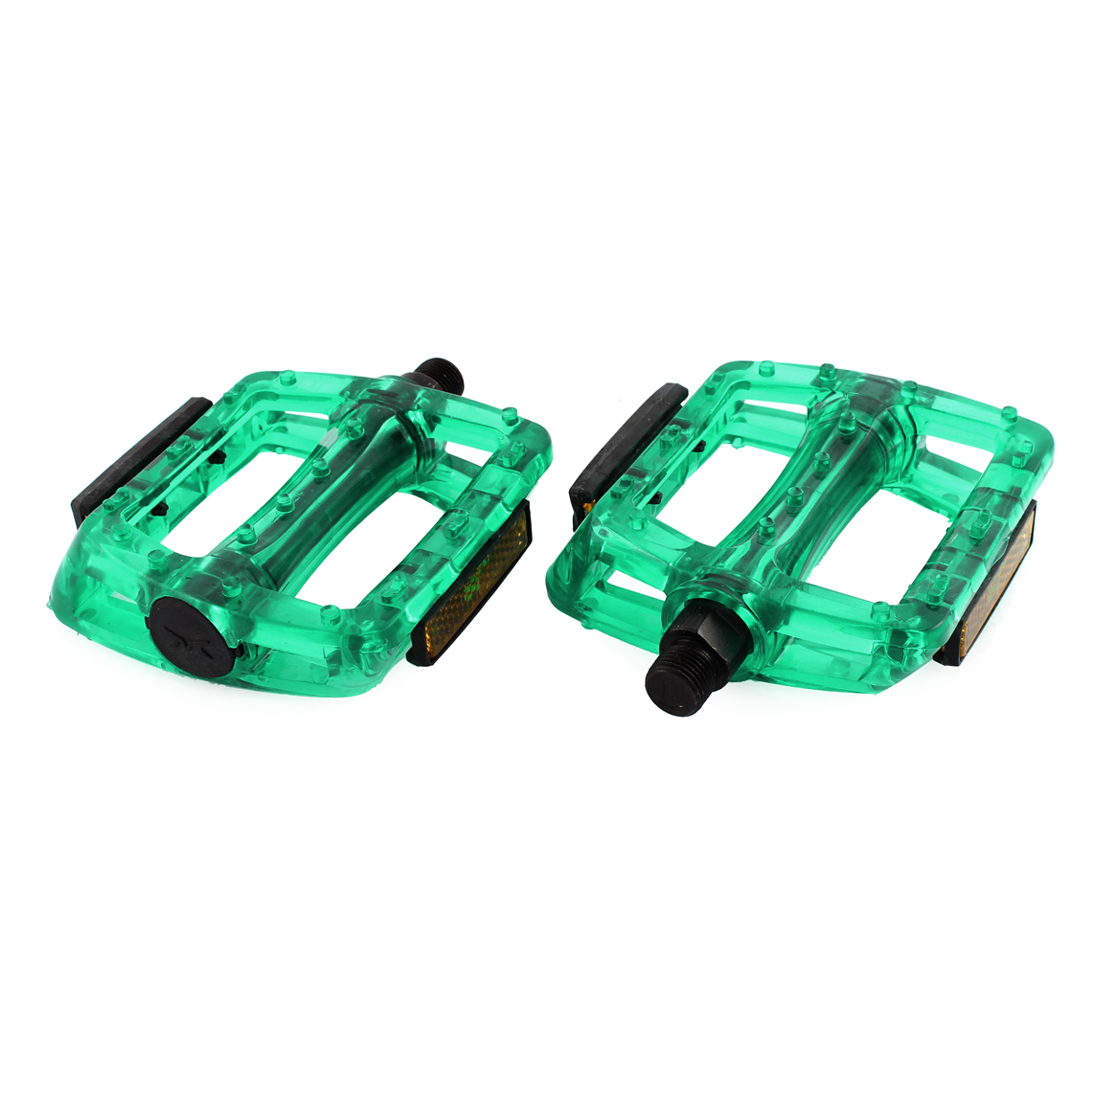 Pair FIXED GEAR Bike Bicycie Royal Green Plastic Platform Pedal Part